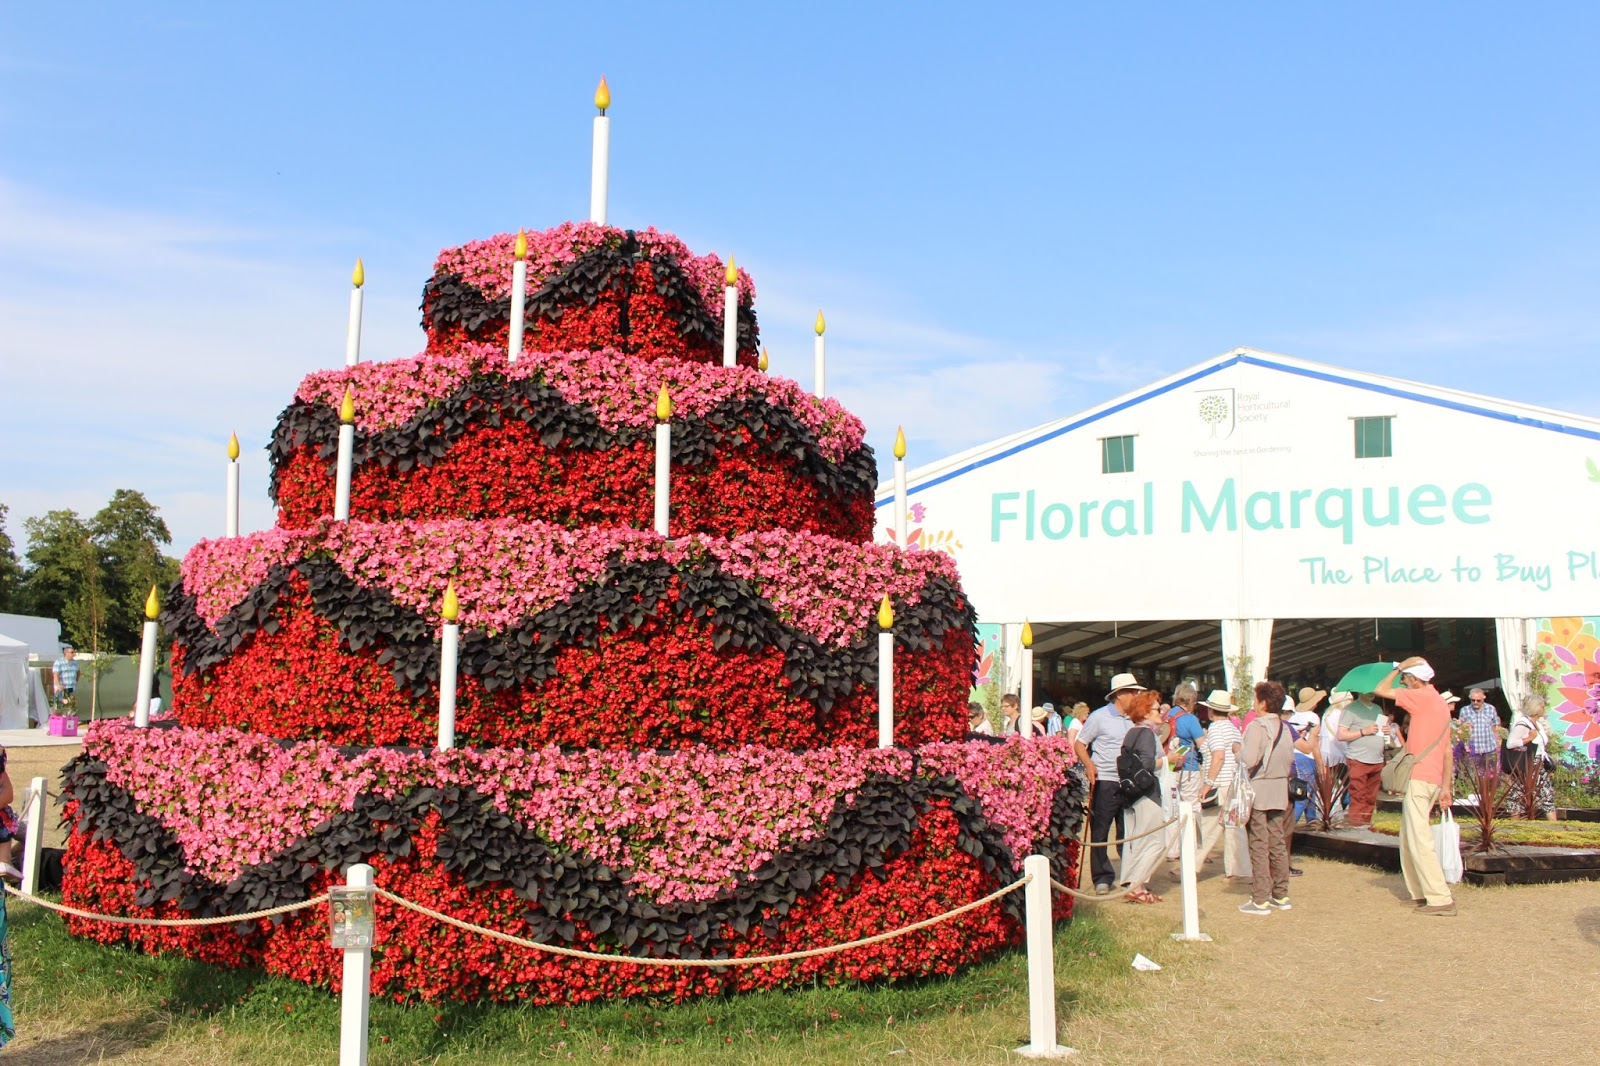 A day at rhs hampton court palace flower show flossie lane - Hampton court flower show ...